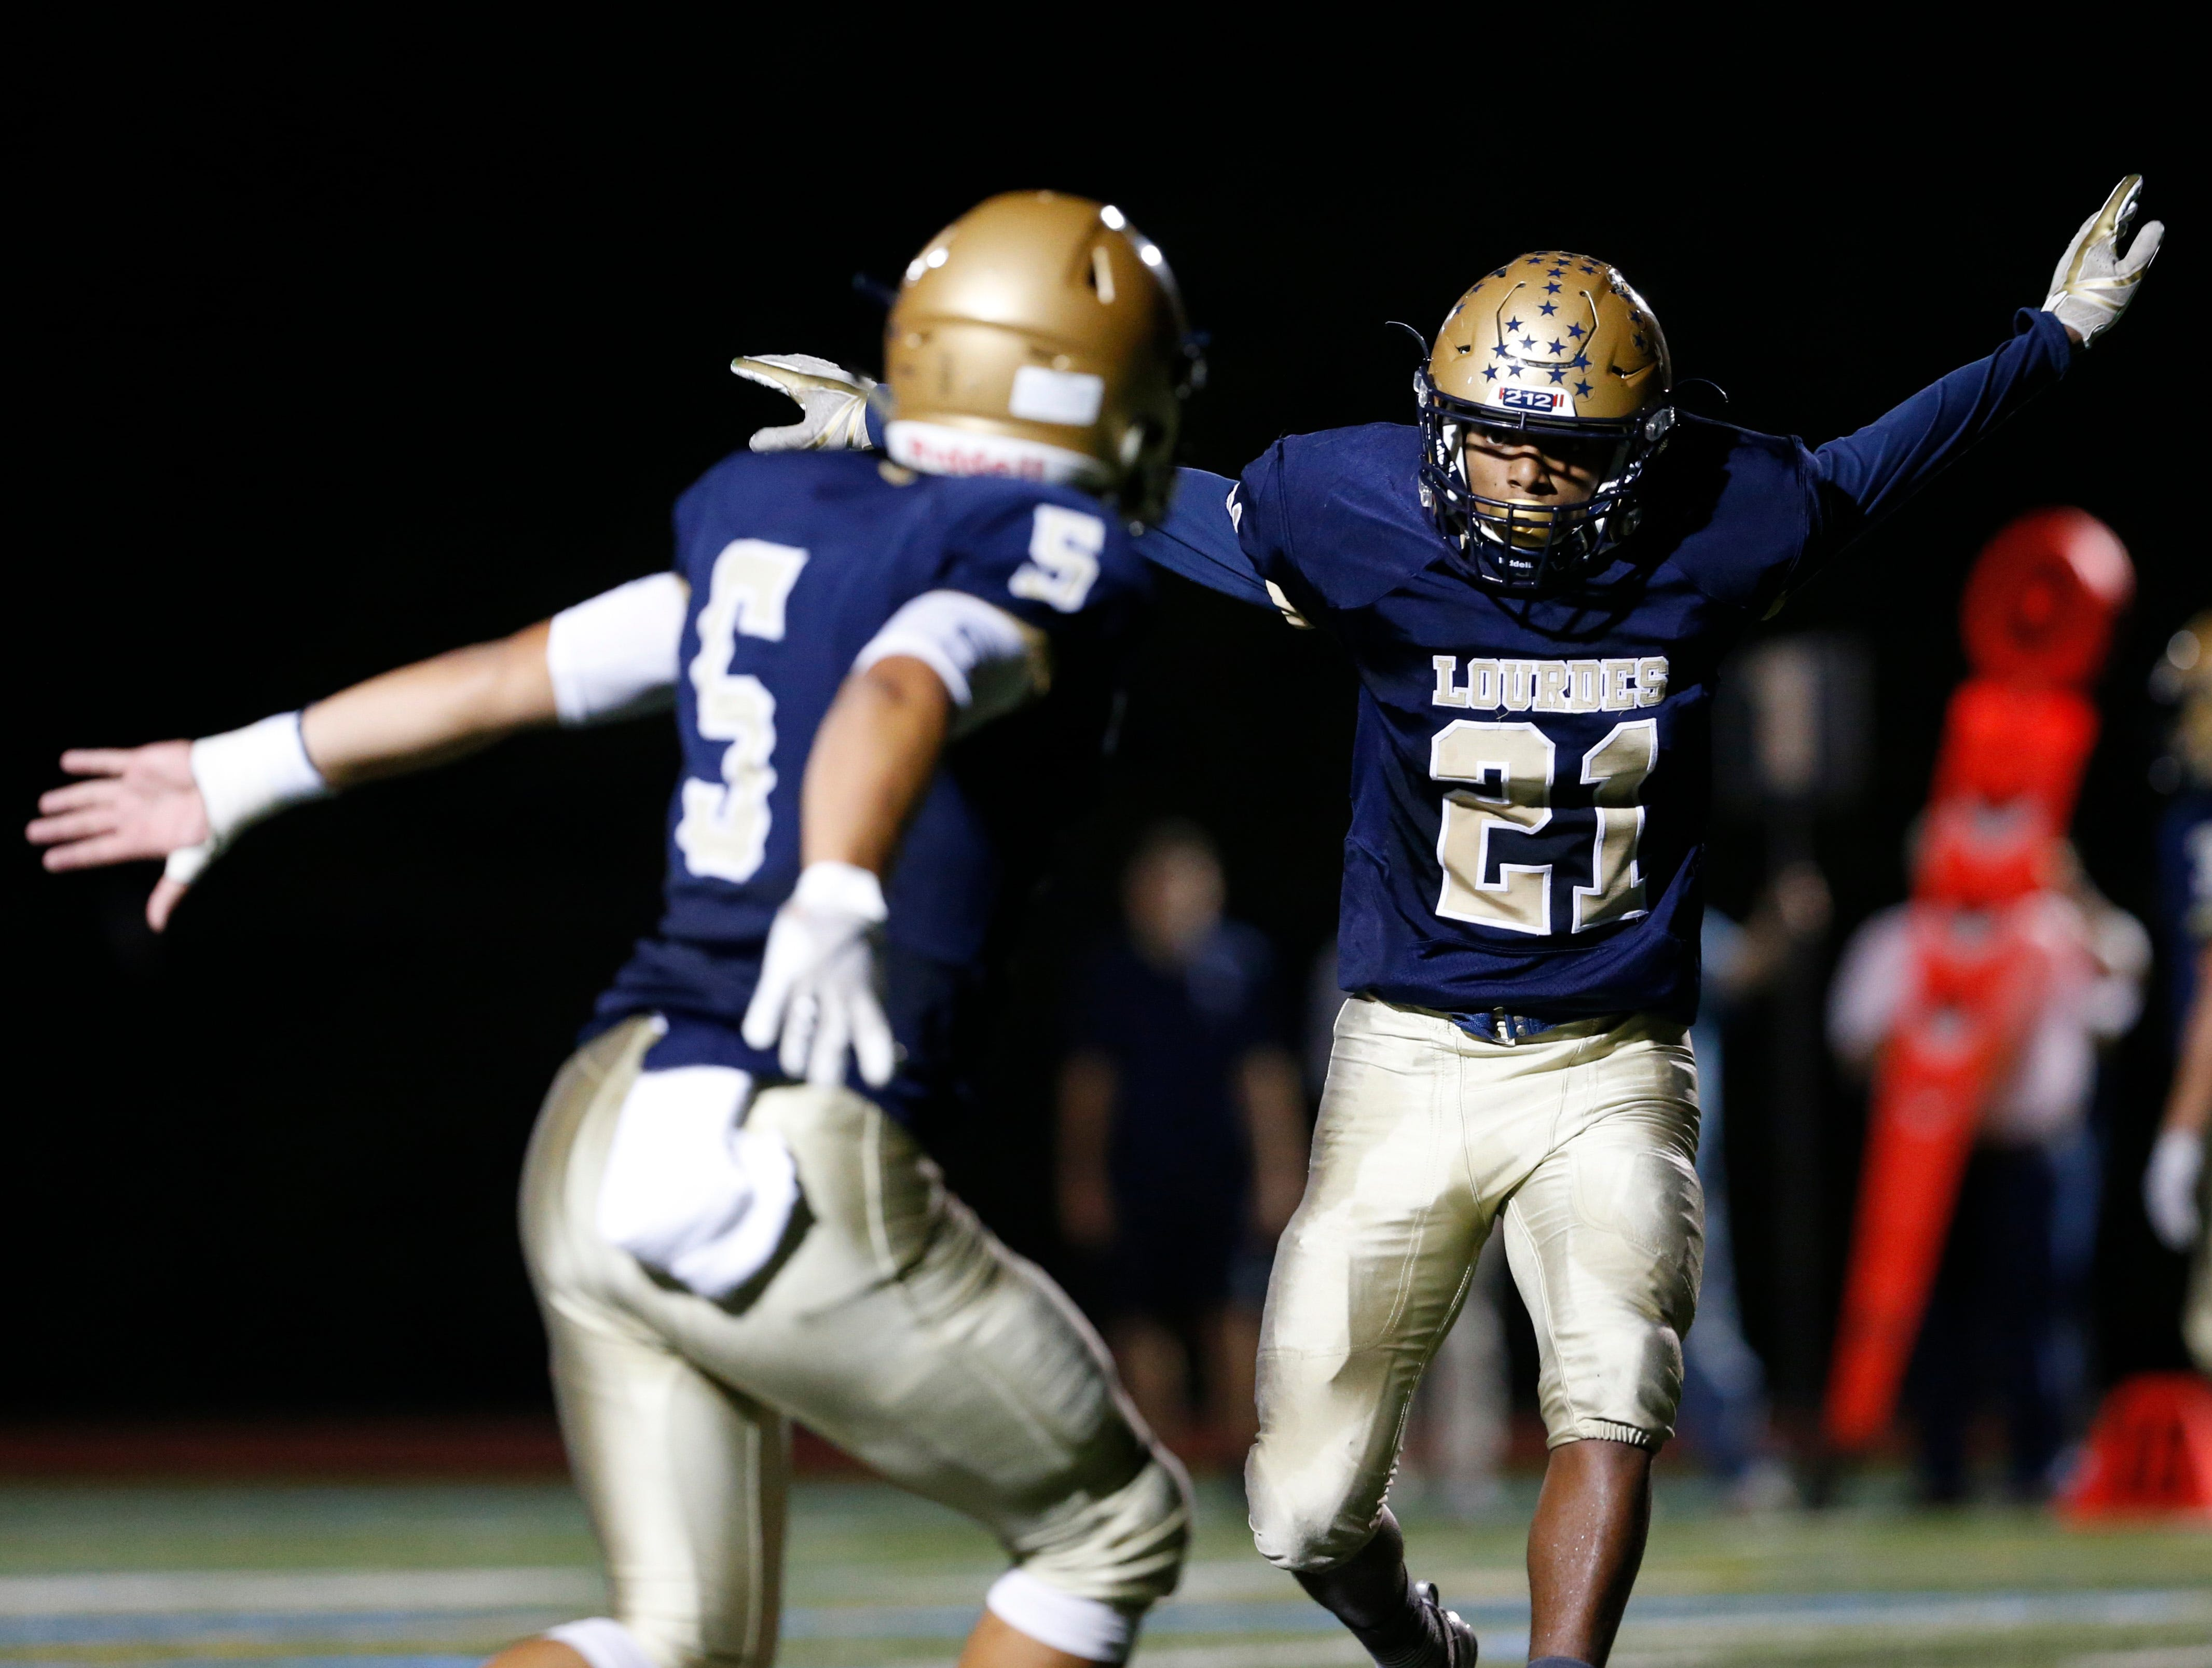 Our Lady of Lourdes football teammates Johnny Wagner (left) and Kyle Strack congratulate each other with a leaping chest bump during their Sept. 21 game against Panas.